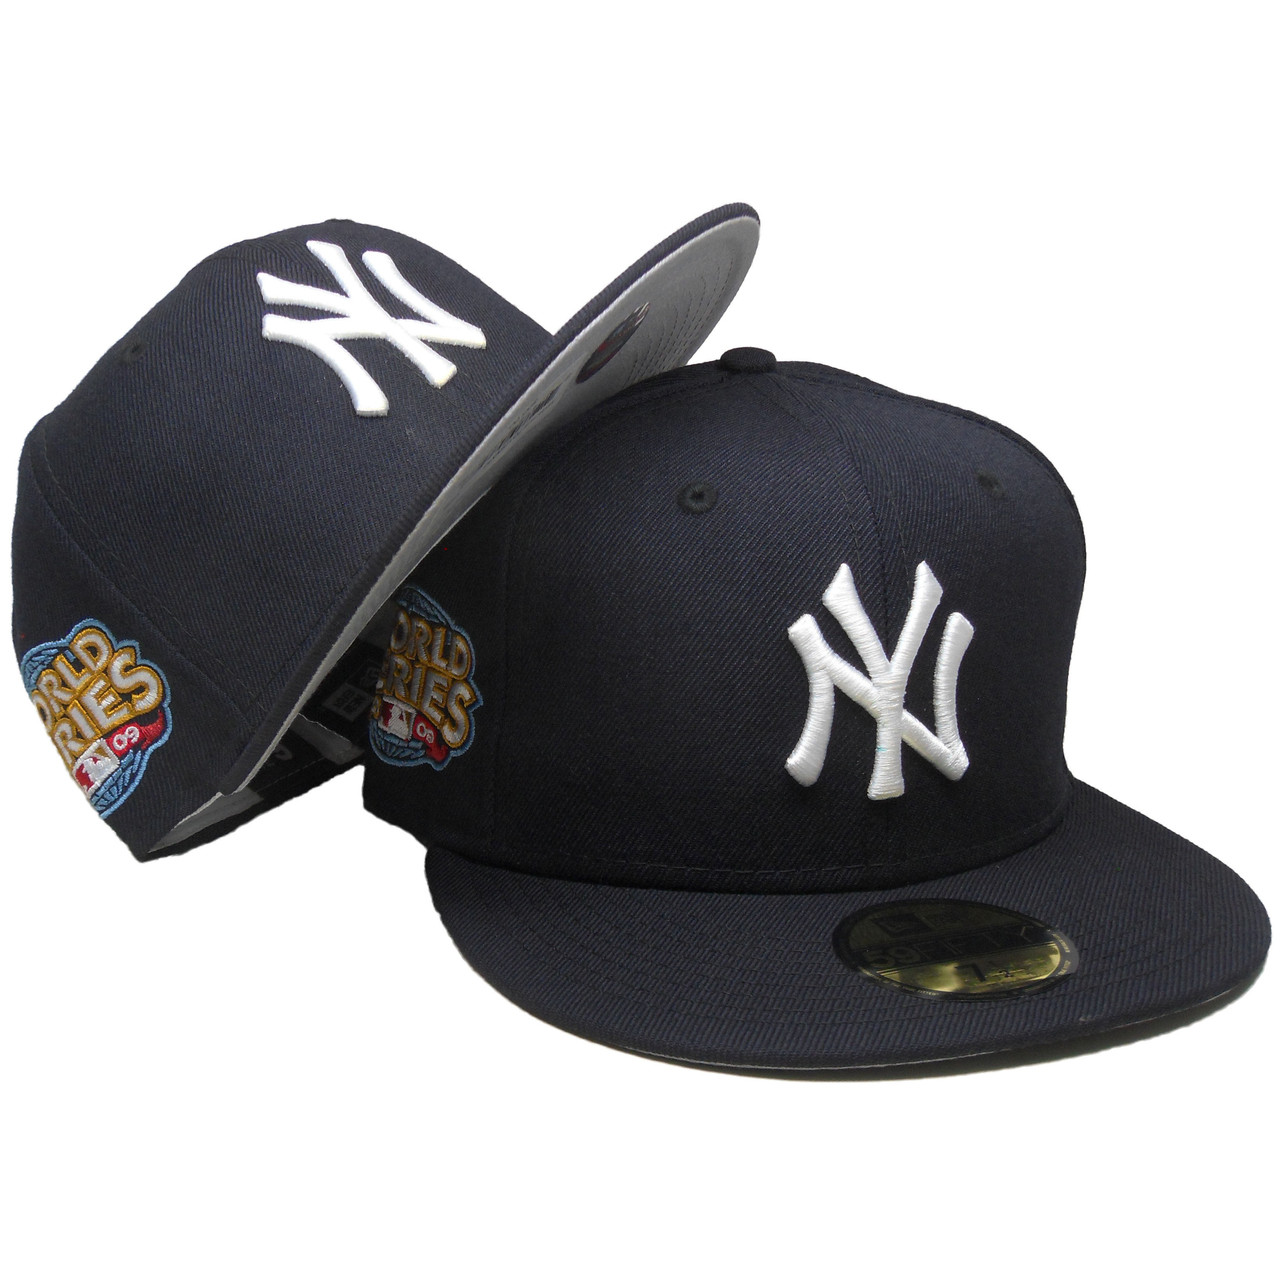 check out df11c 24a3d New York Yankees New Era Custom 59Fifty Fitted Hat - Navy, White, Gray